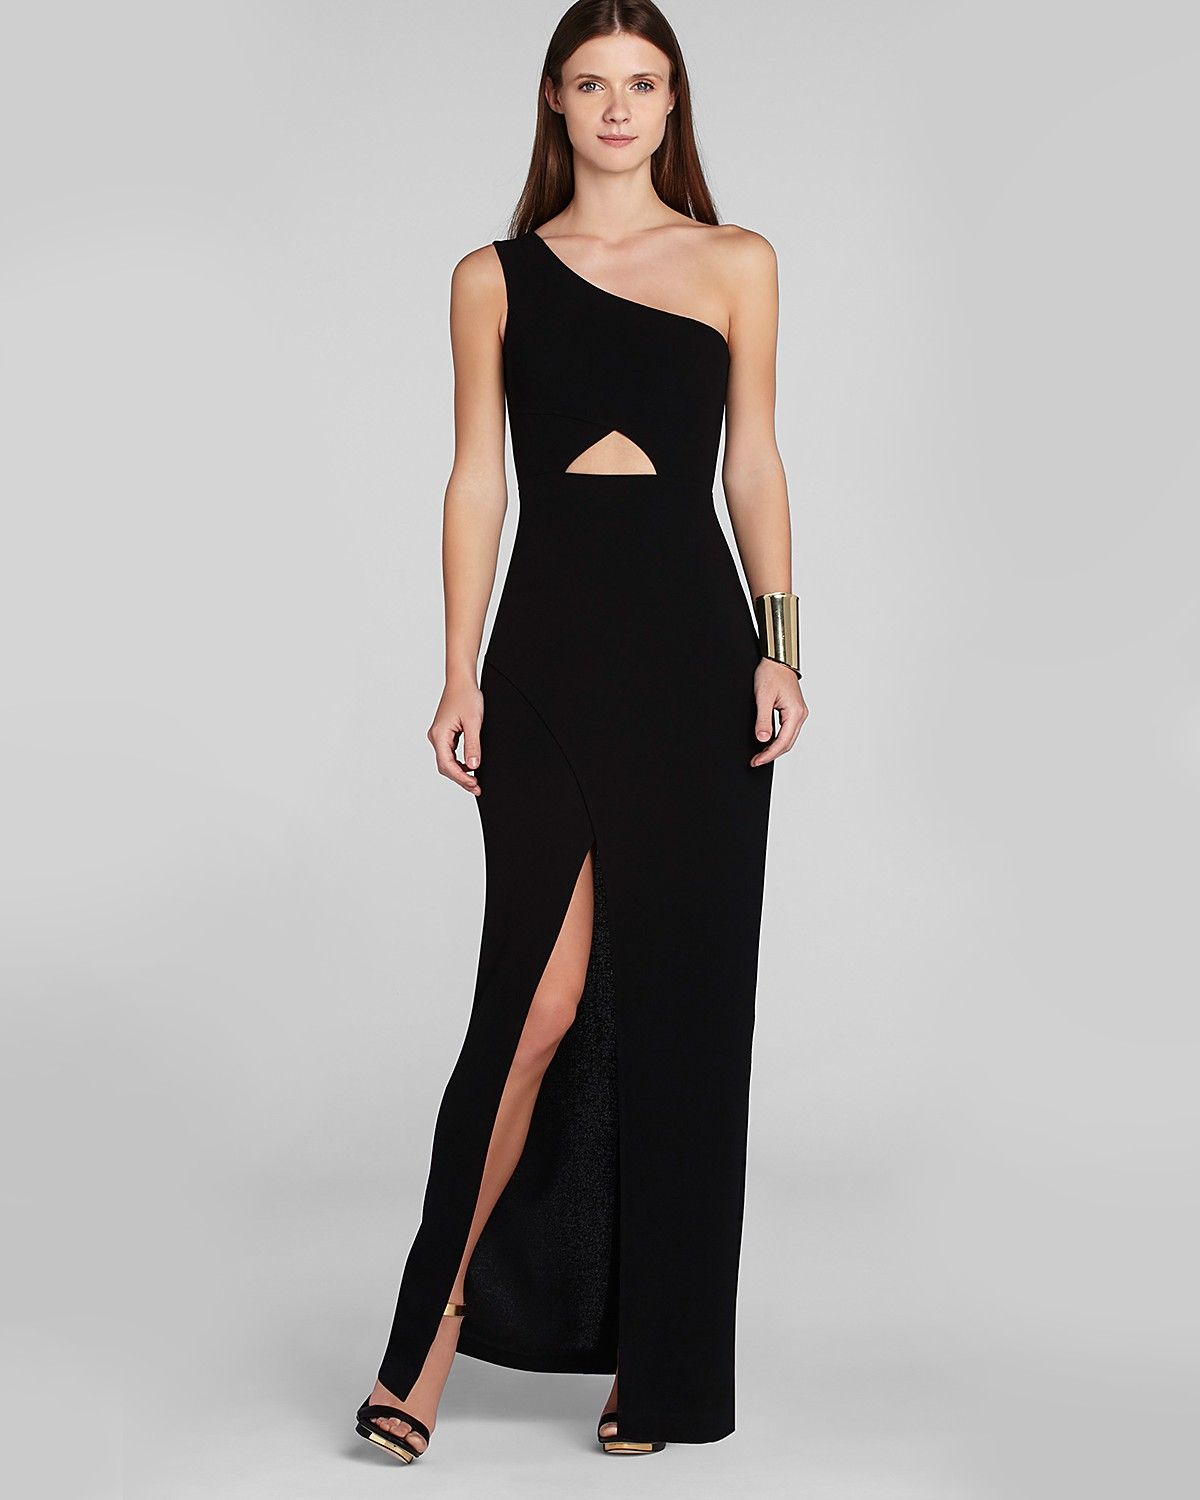 152c9abe4 BCBGMAXAZRIA Gown - Kauri One Shoulder Cutout